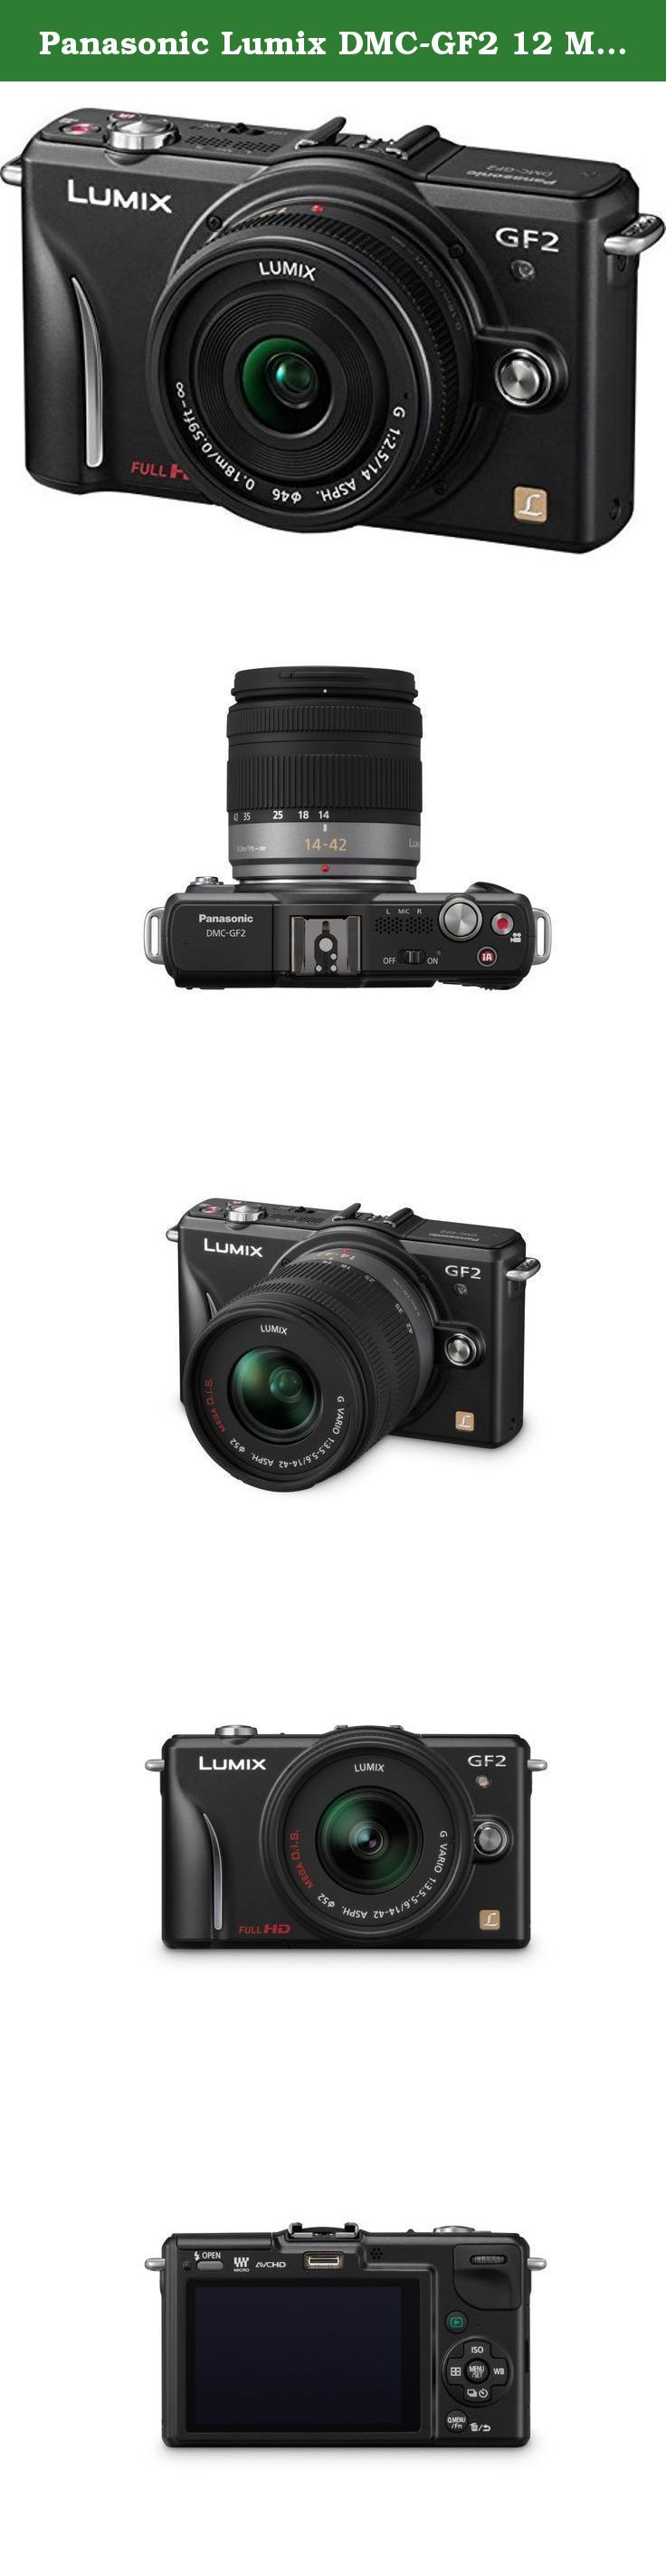 Panasonic Lumix DMC-GF2 12 MP Micro Four-Thirds Mirrorless Digital Camera with 3.0-Inch Touch-Screen LCD and 14-42mm Lens (Black). The LUMIX GF2 is Panasonics signature DSL Micro Compact system camera in its mirrorless line-up, as it it's the smallest and lightest model offered by Panasonic, while still offering the superb image quality expected from LUMIX. Comparing to the GF1, its predecessor, the GF2 has been reduced approximately 19% in size and approximately 7% in weight yet is still...